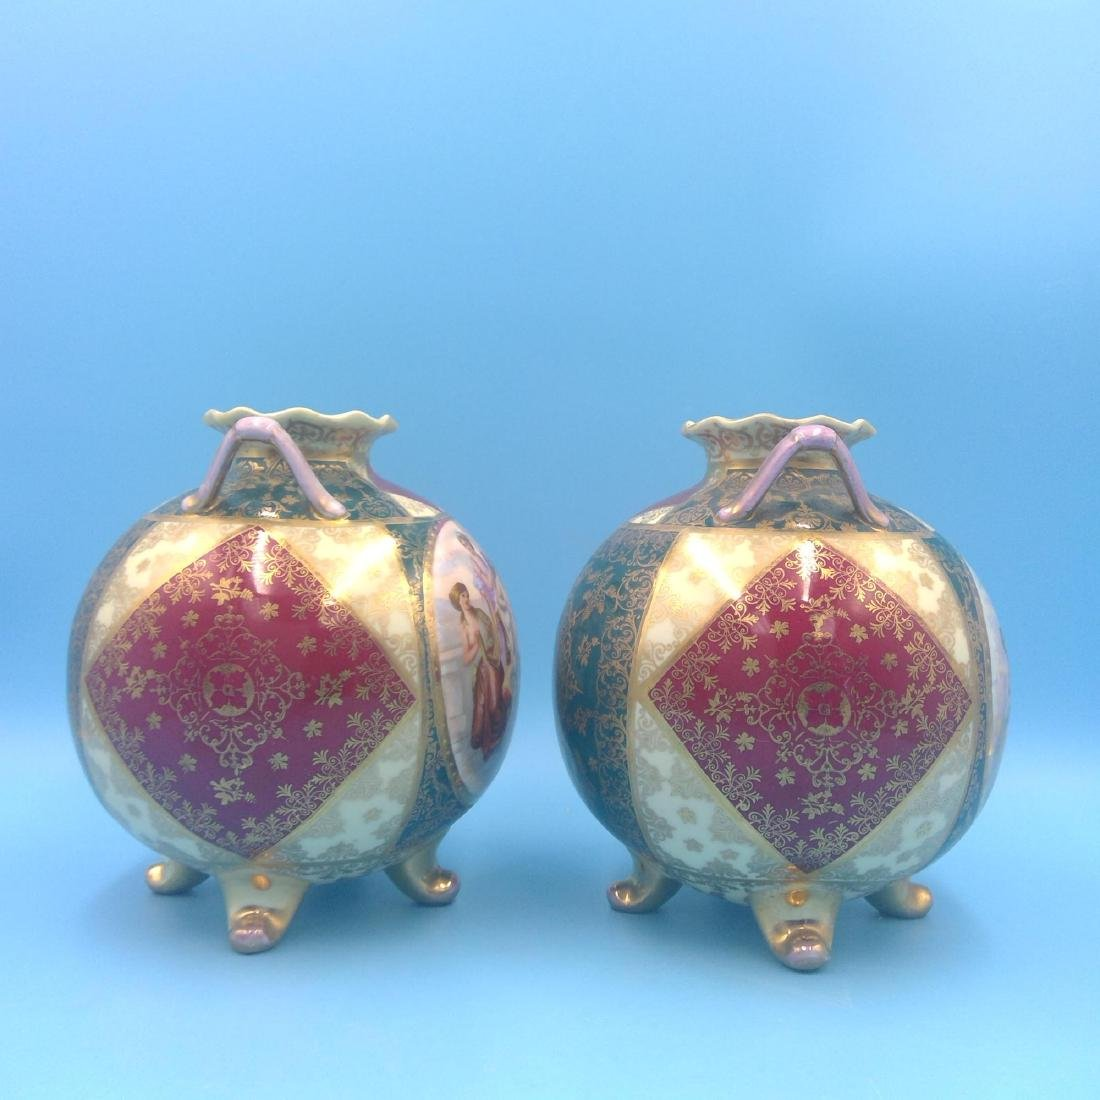 PAIR OF ROYAL VIENNA KAUFMANN SCENERY VASES - 4